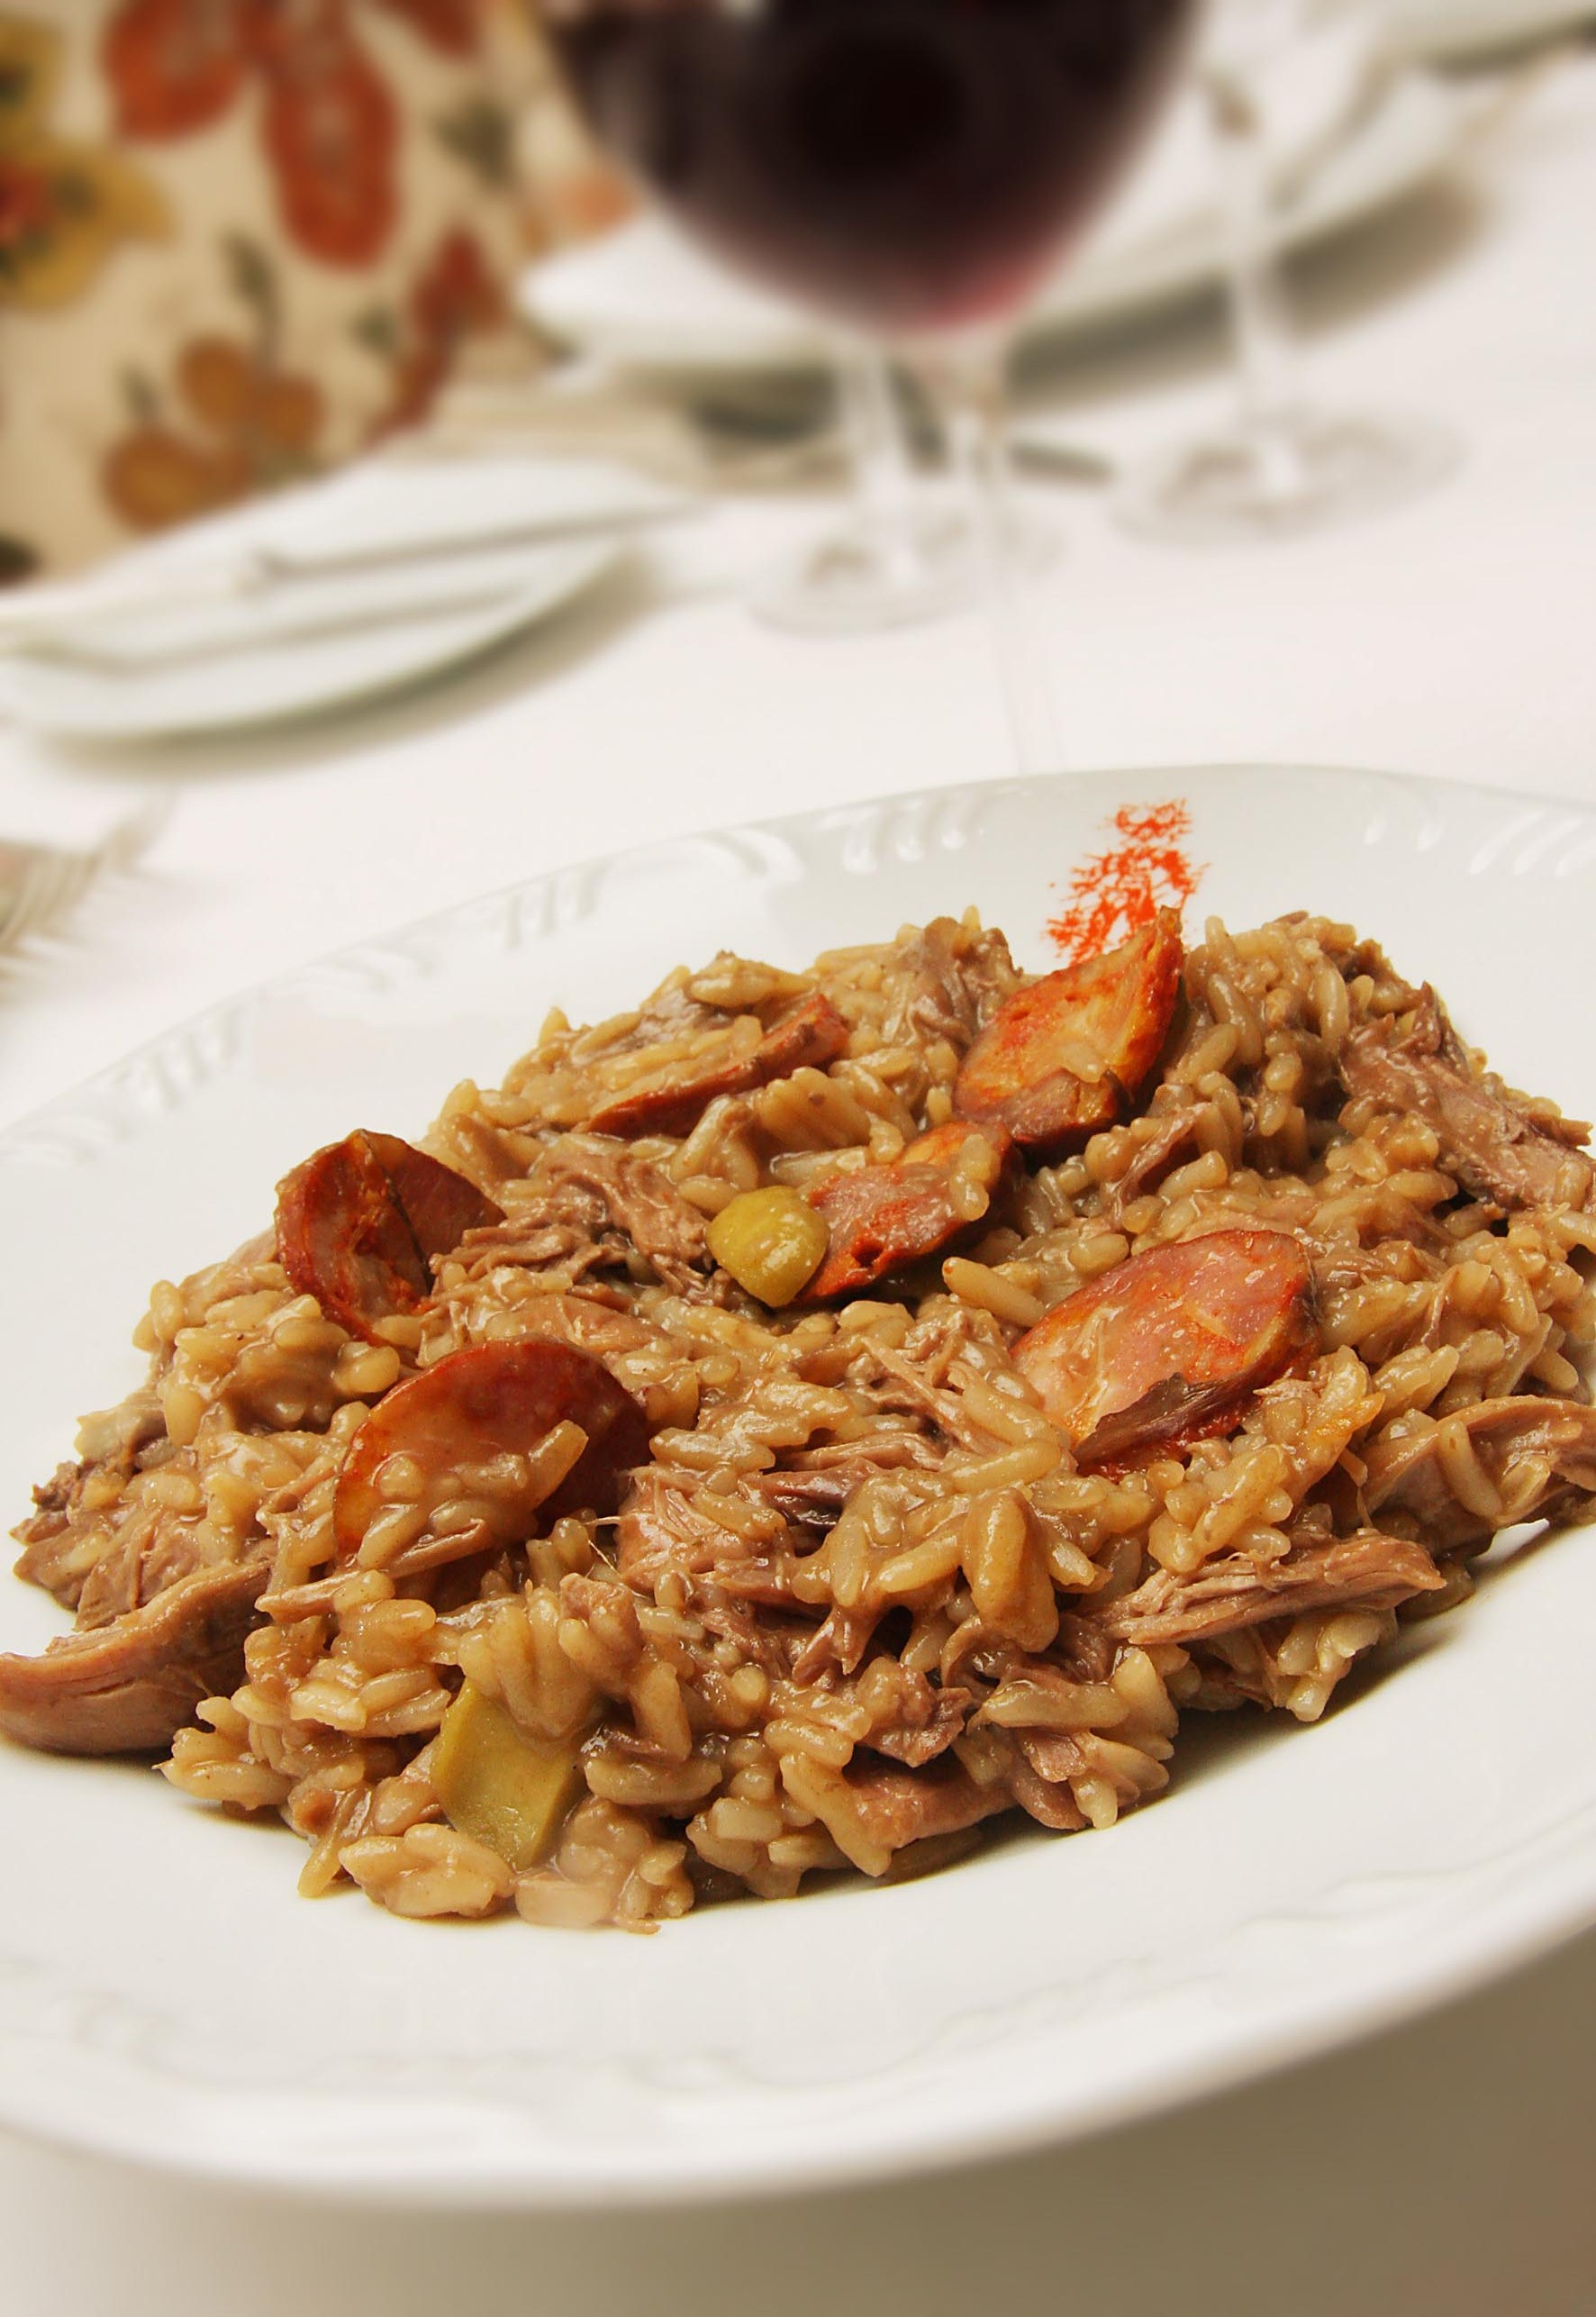 Tradicional, Arroz de Pato figura no menu-executivo